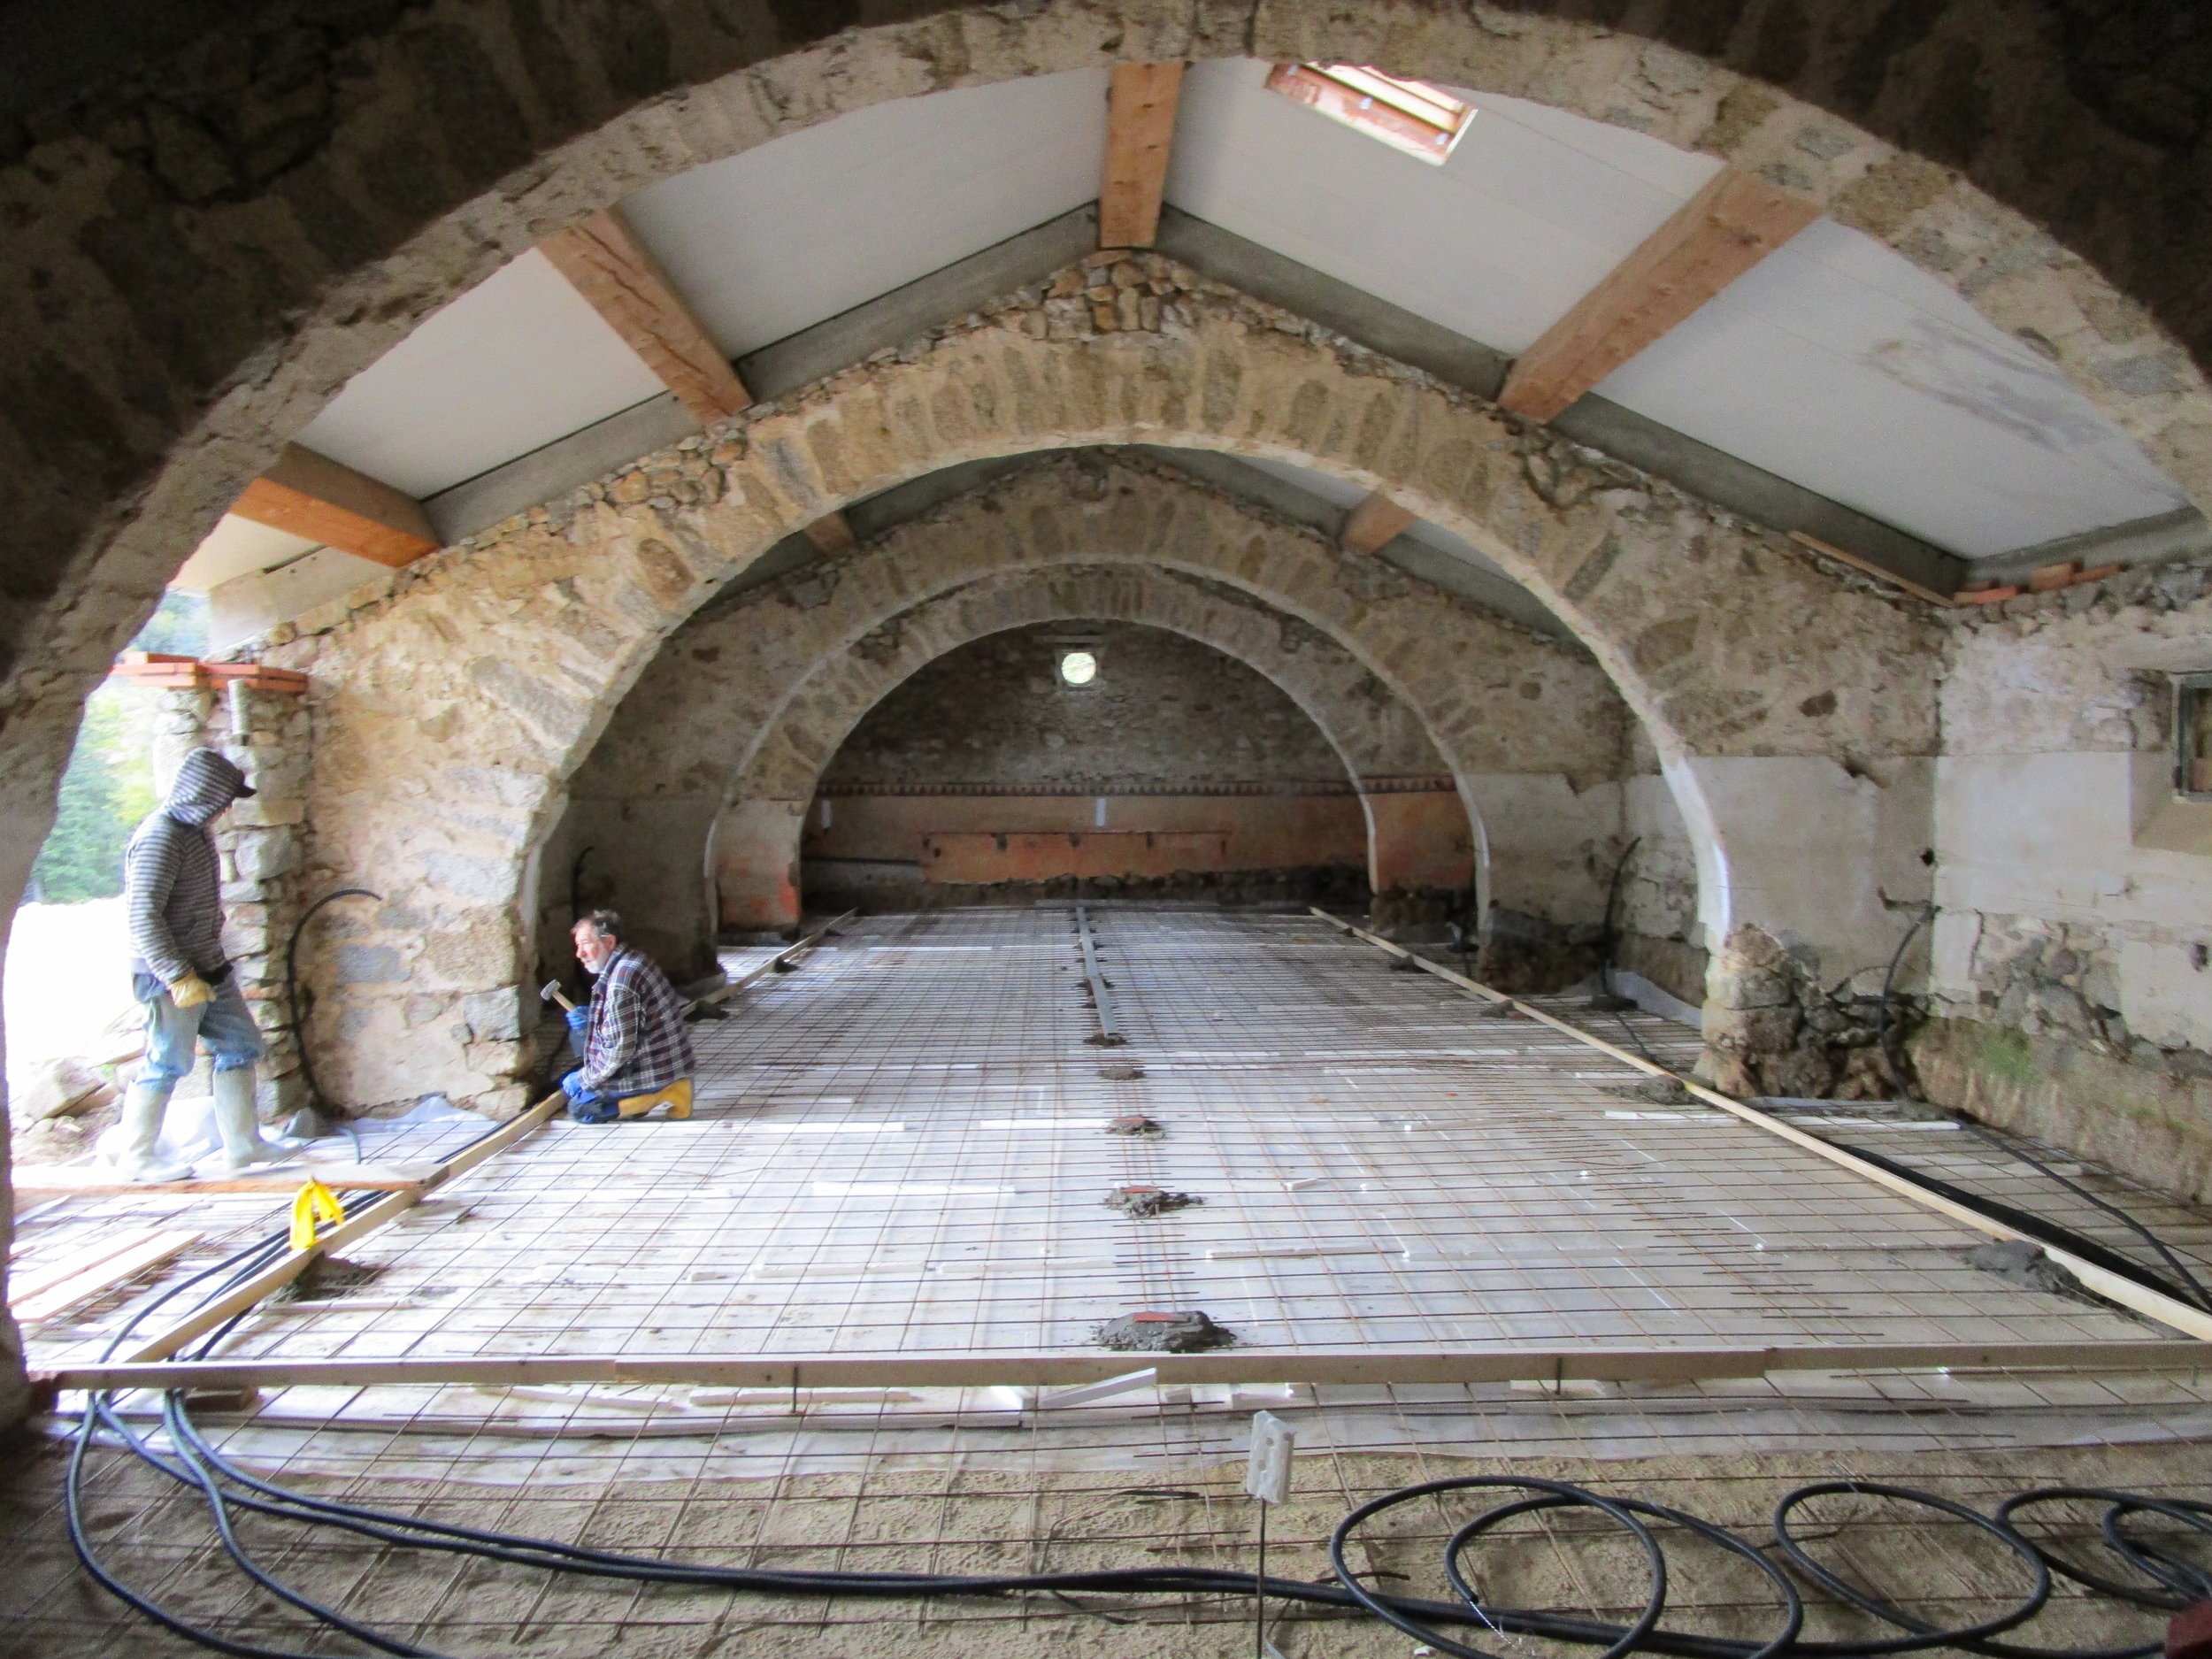 Barn, concrete floor being laid